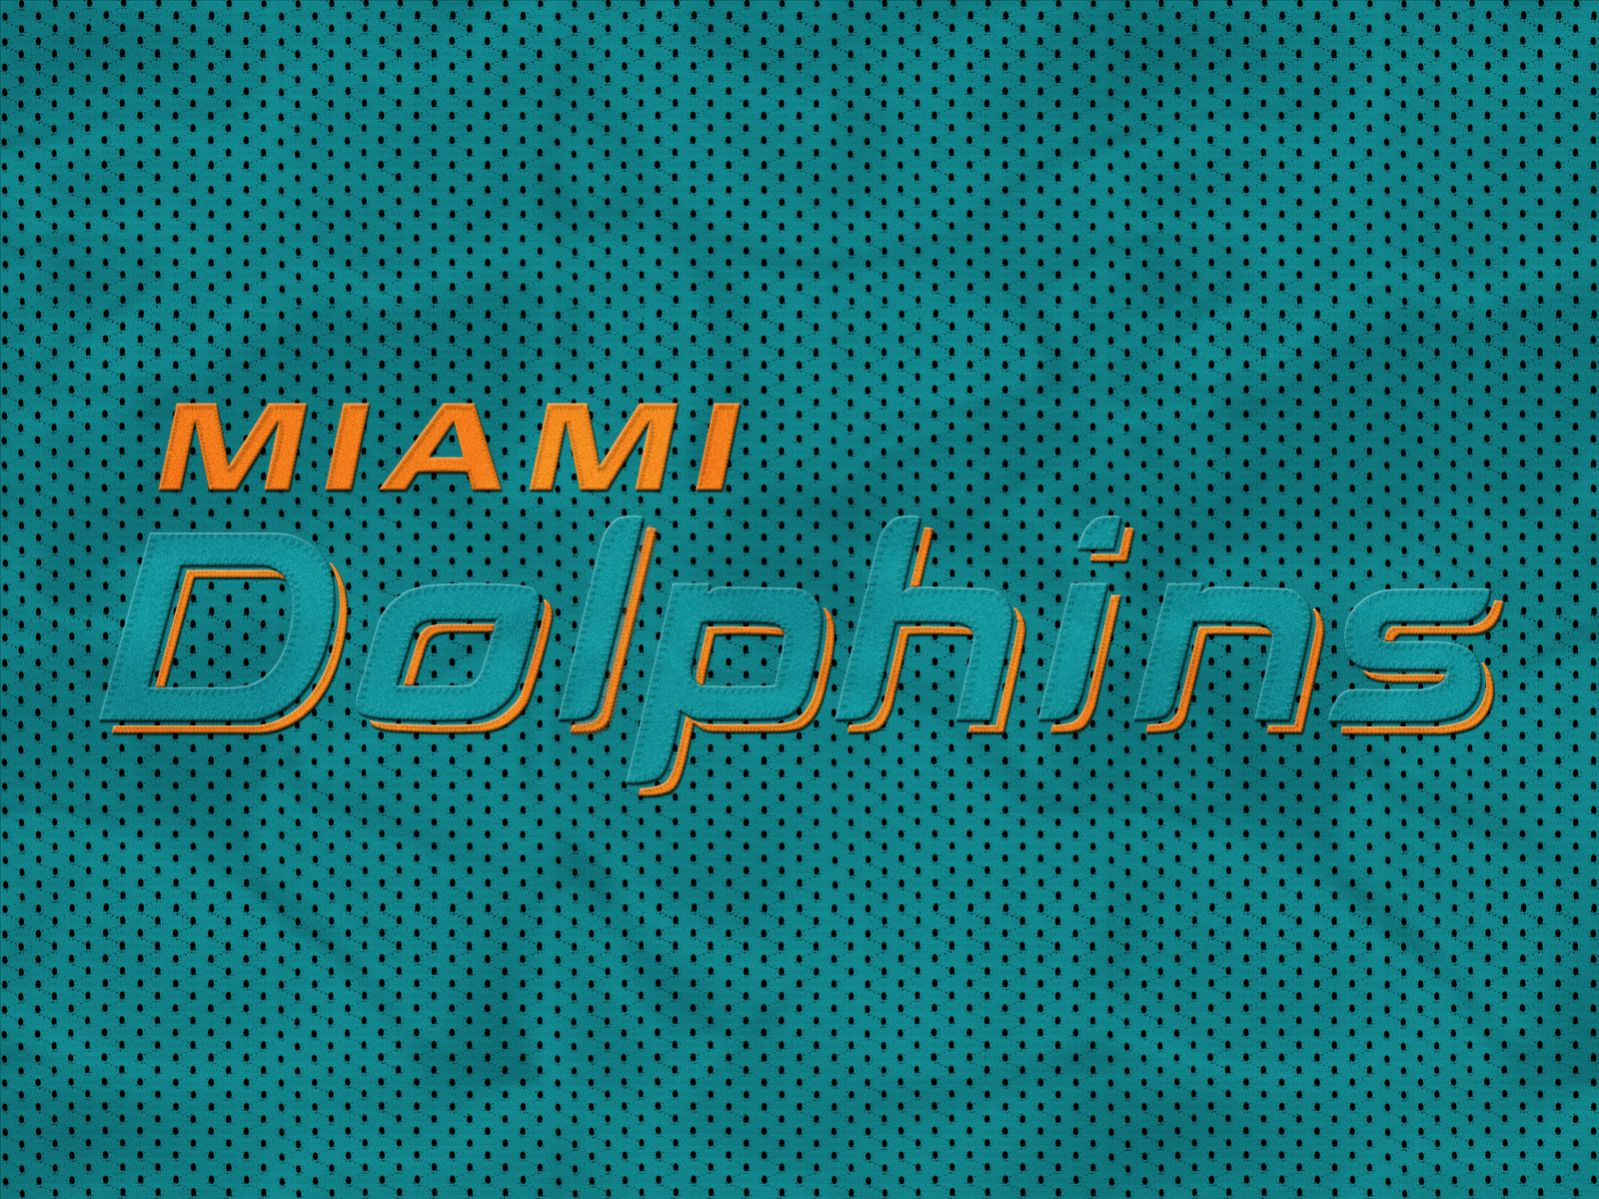 Miami dolphins new logo wallpaper 96 best images about bmiami dolphinsb on pinterest voltagebd